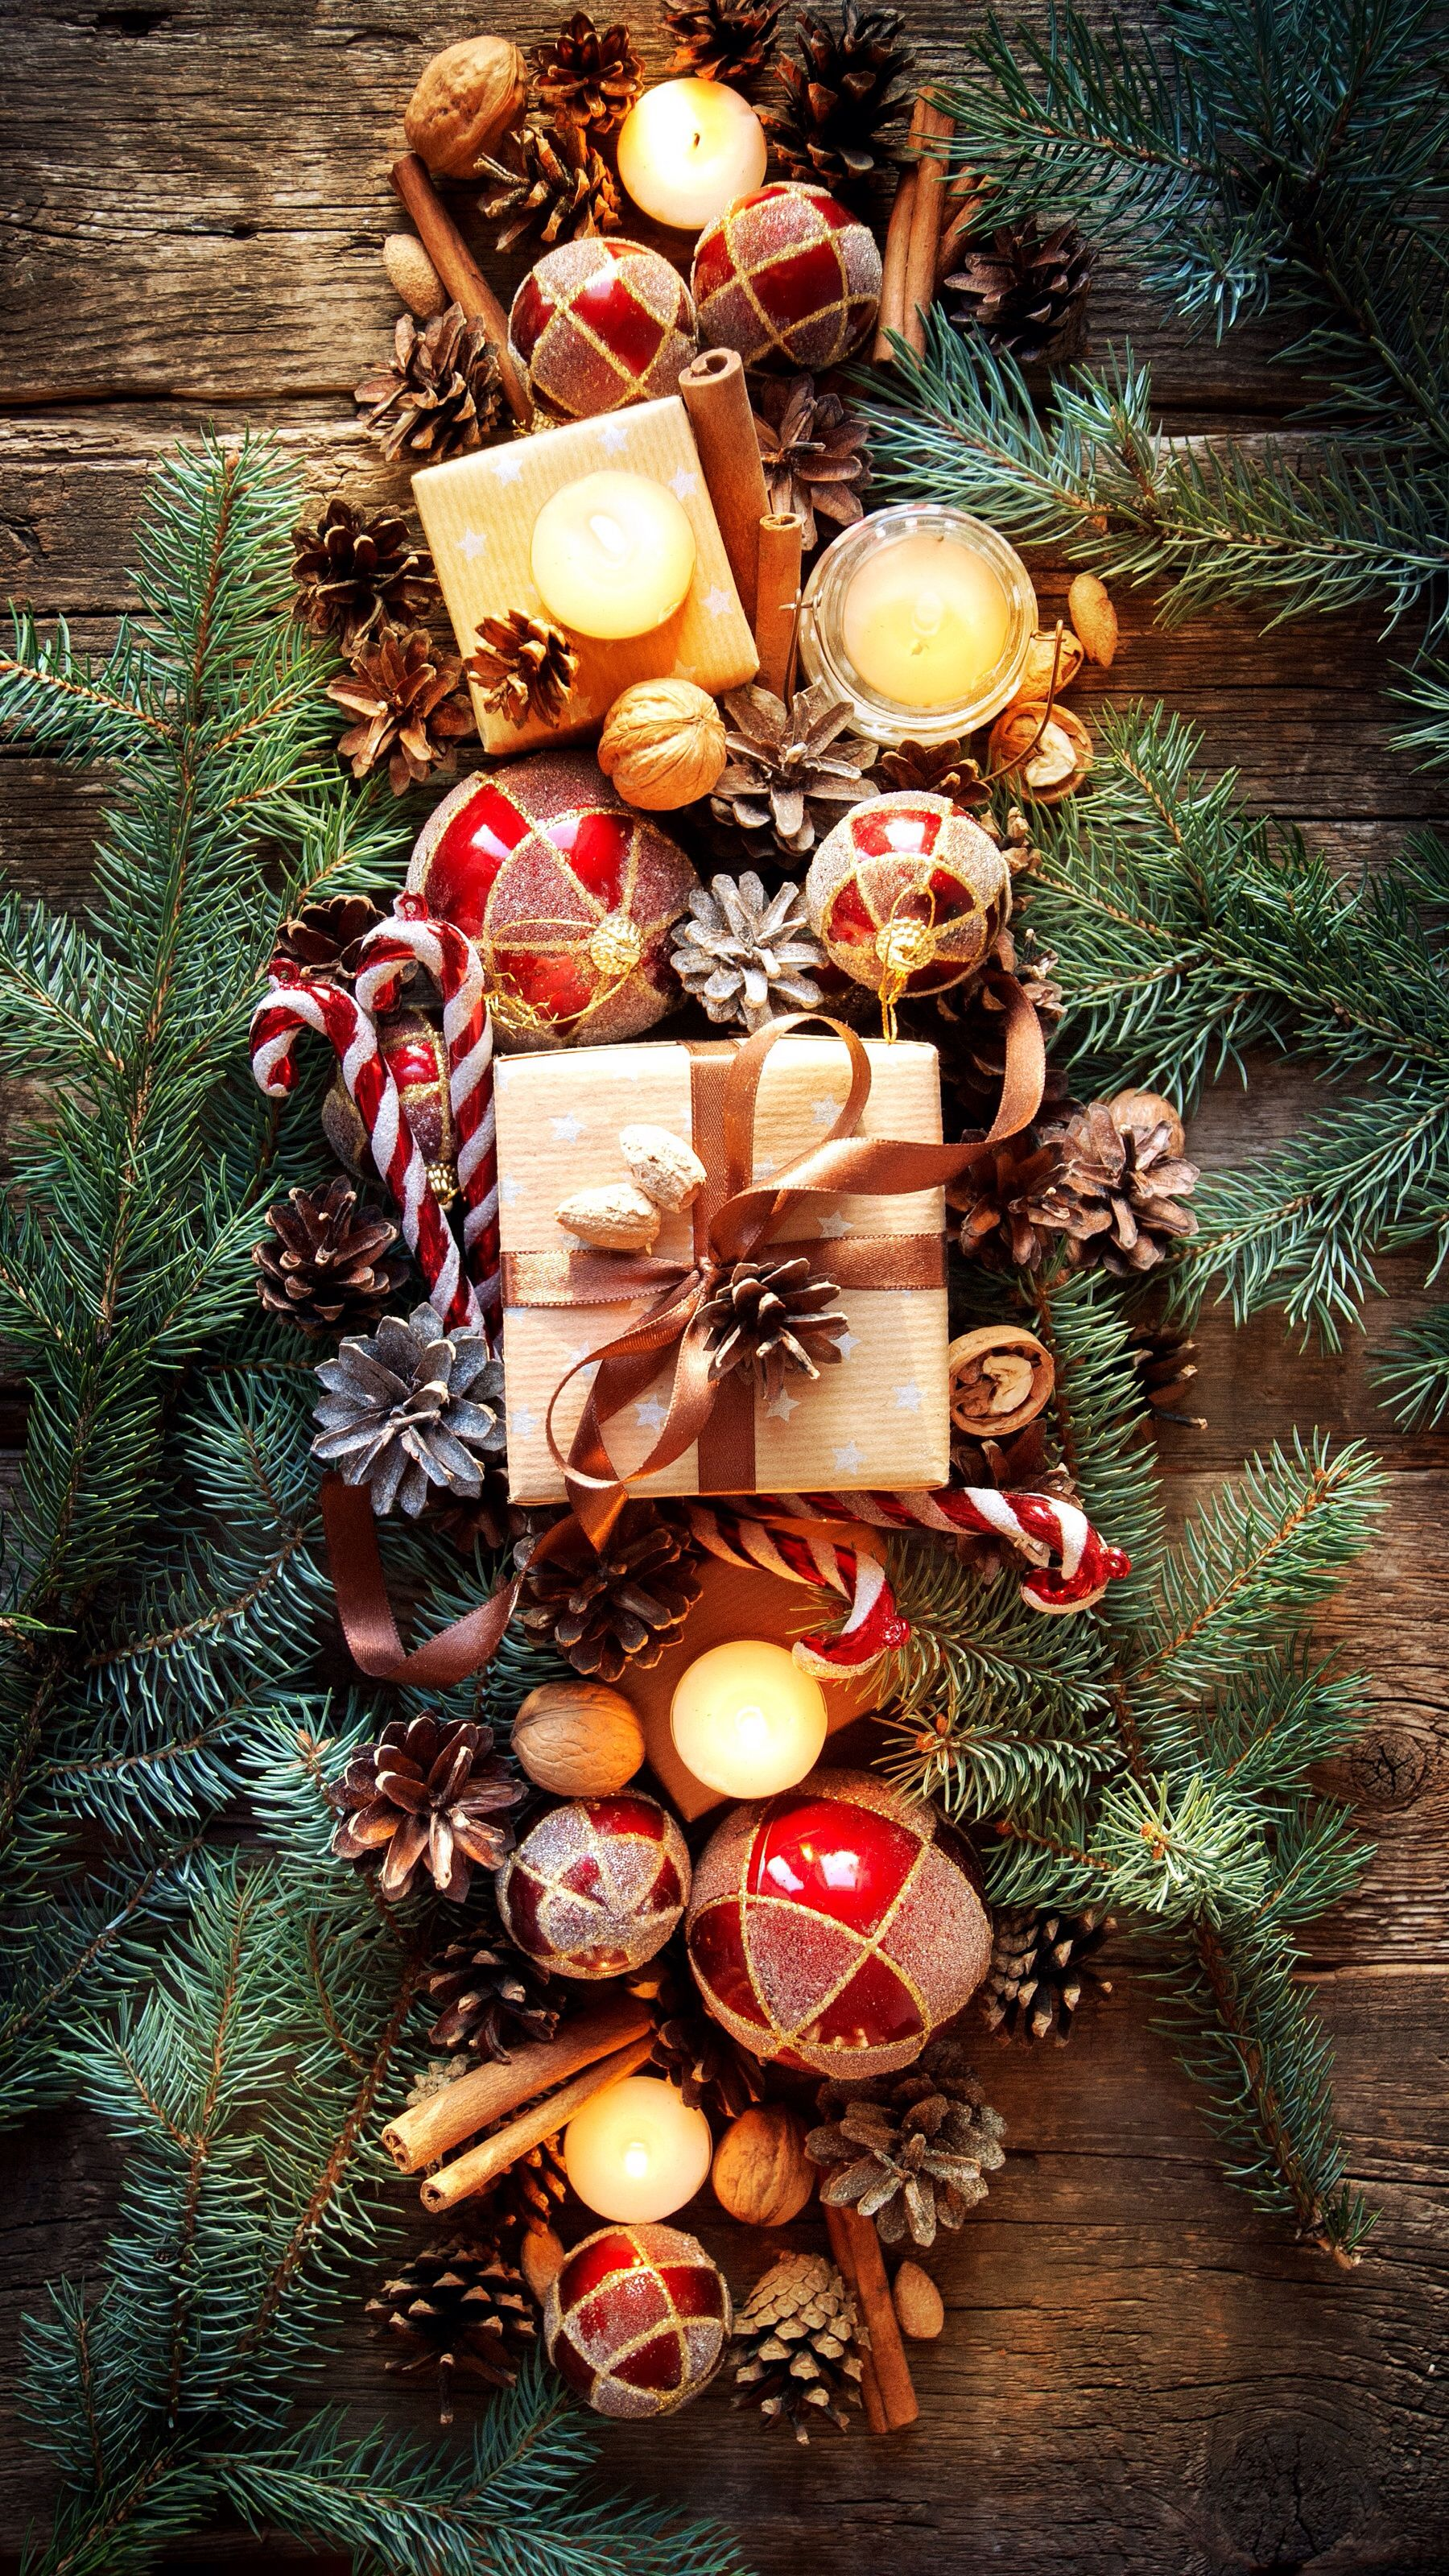 Pin By Wallpapers Phone Pad Hd On 9 16 Phone Merry Christmas 2020 Christmas Time Christmas Wreaths